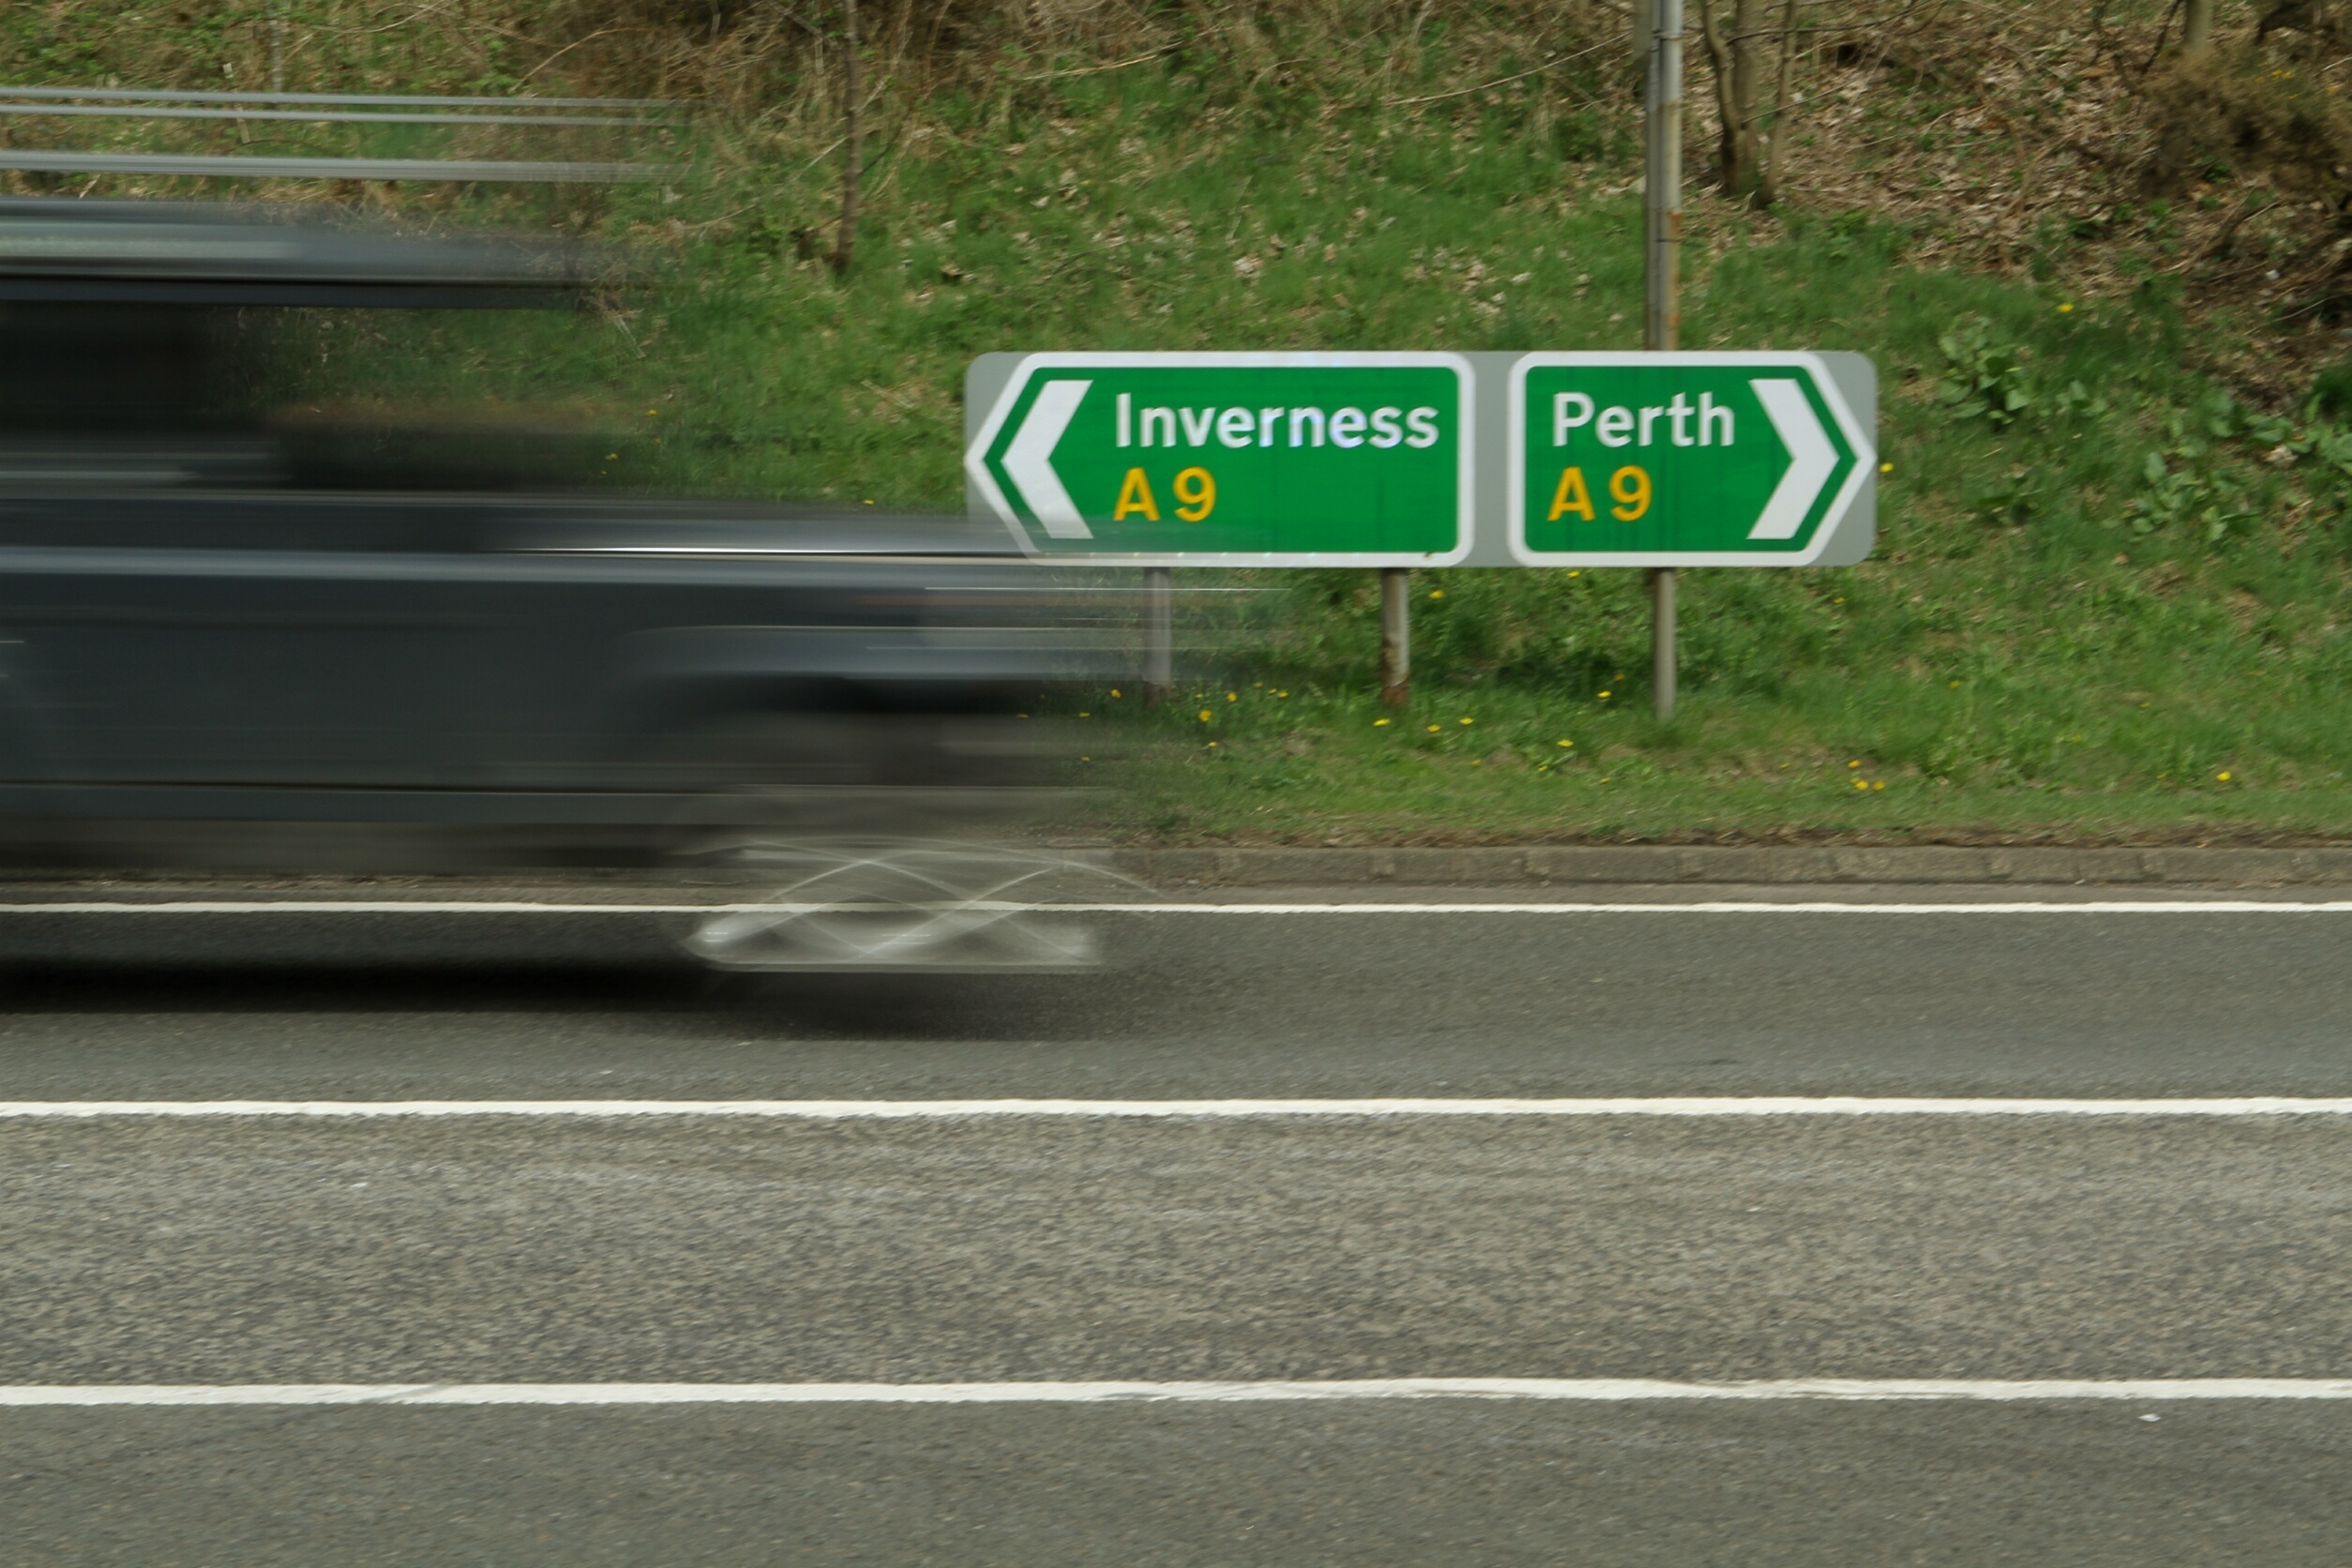 The A9 Perth to Inverness road.